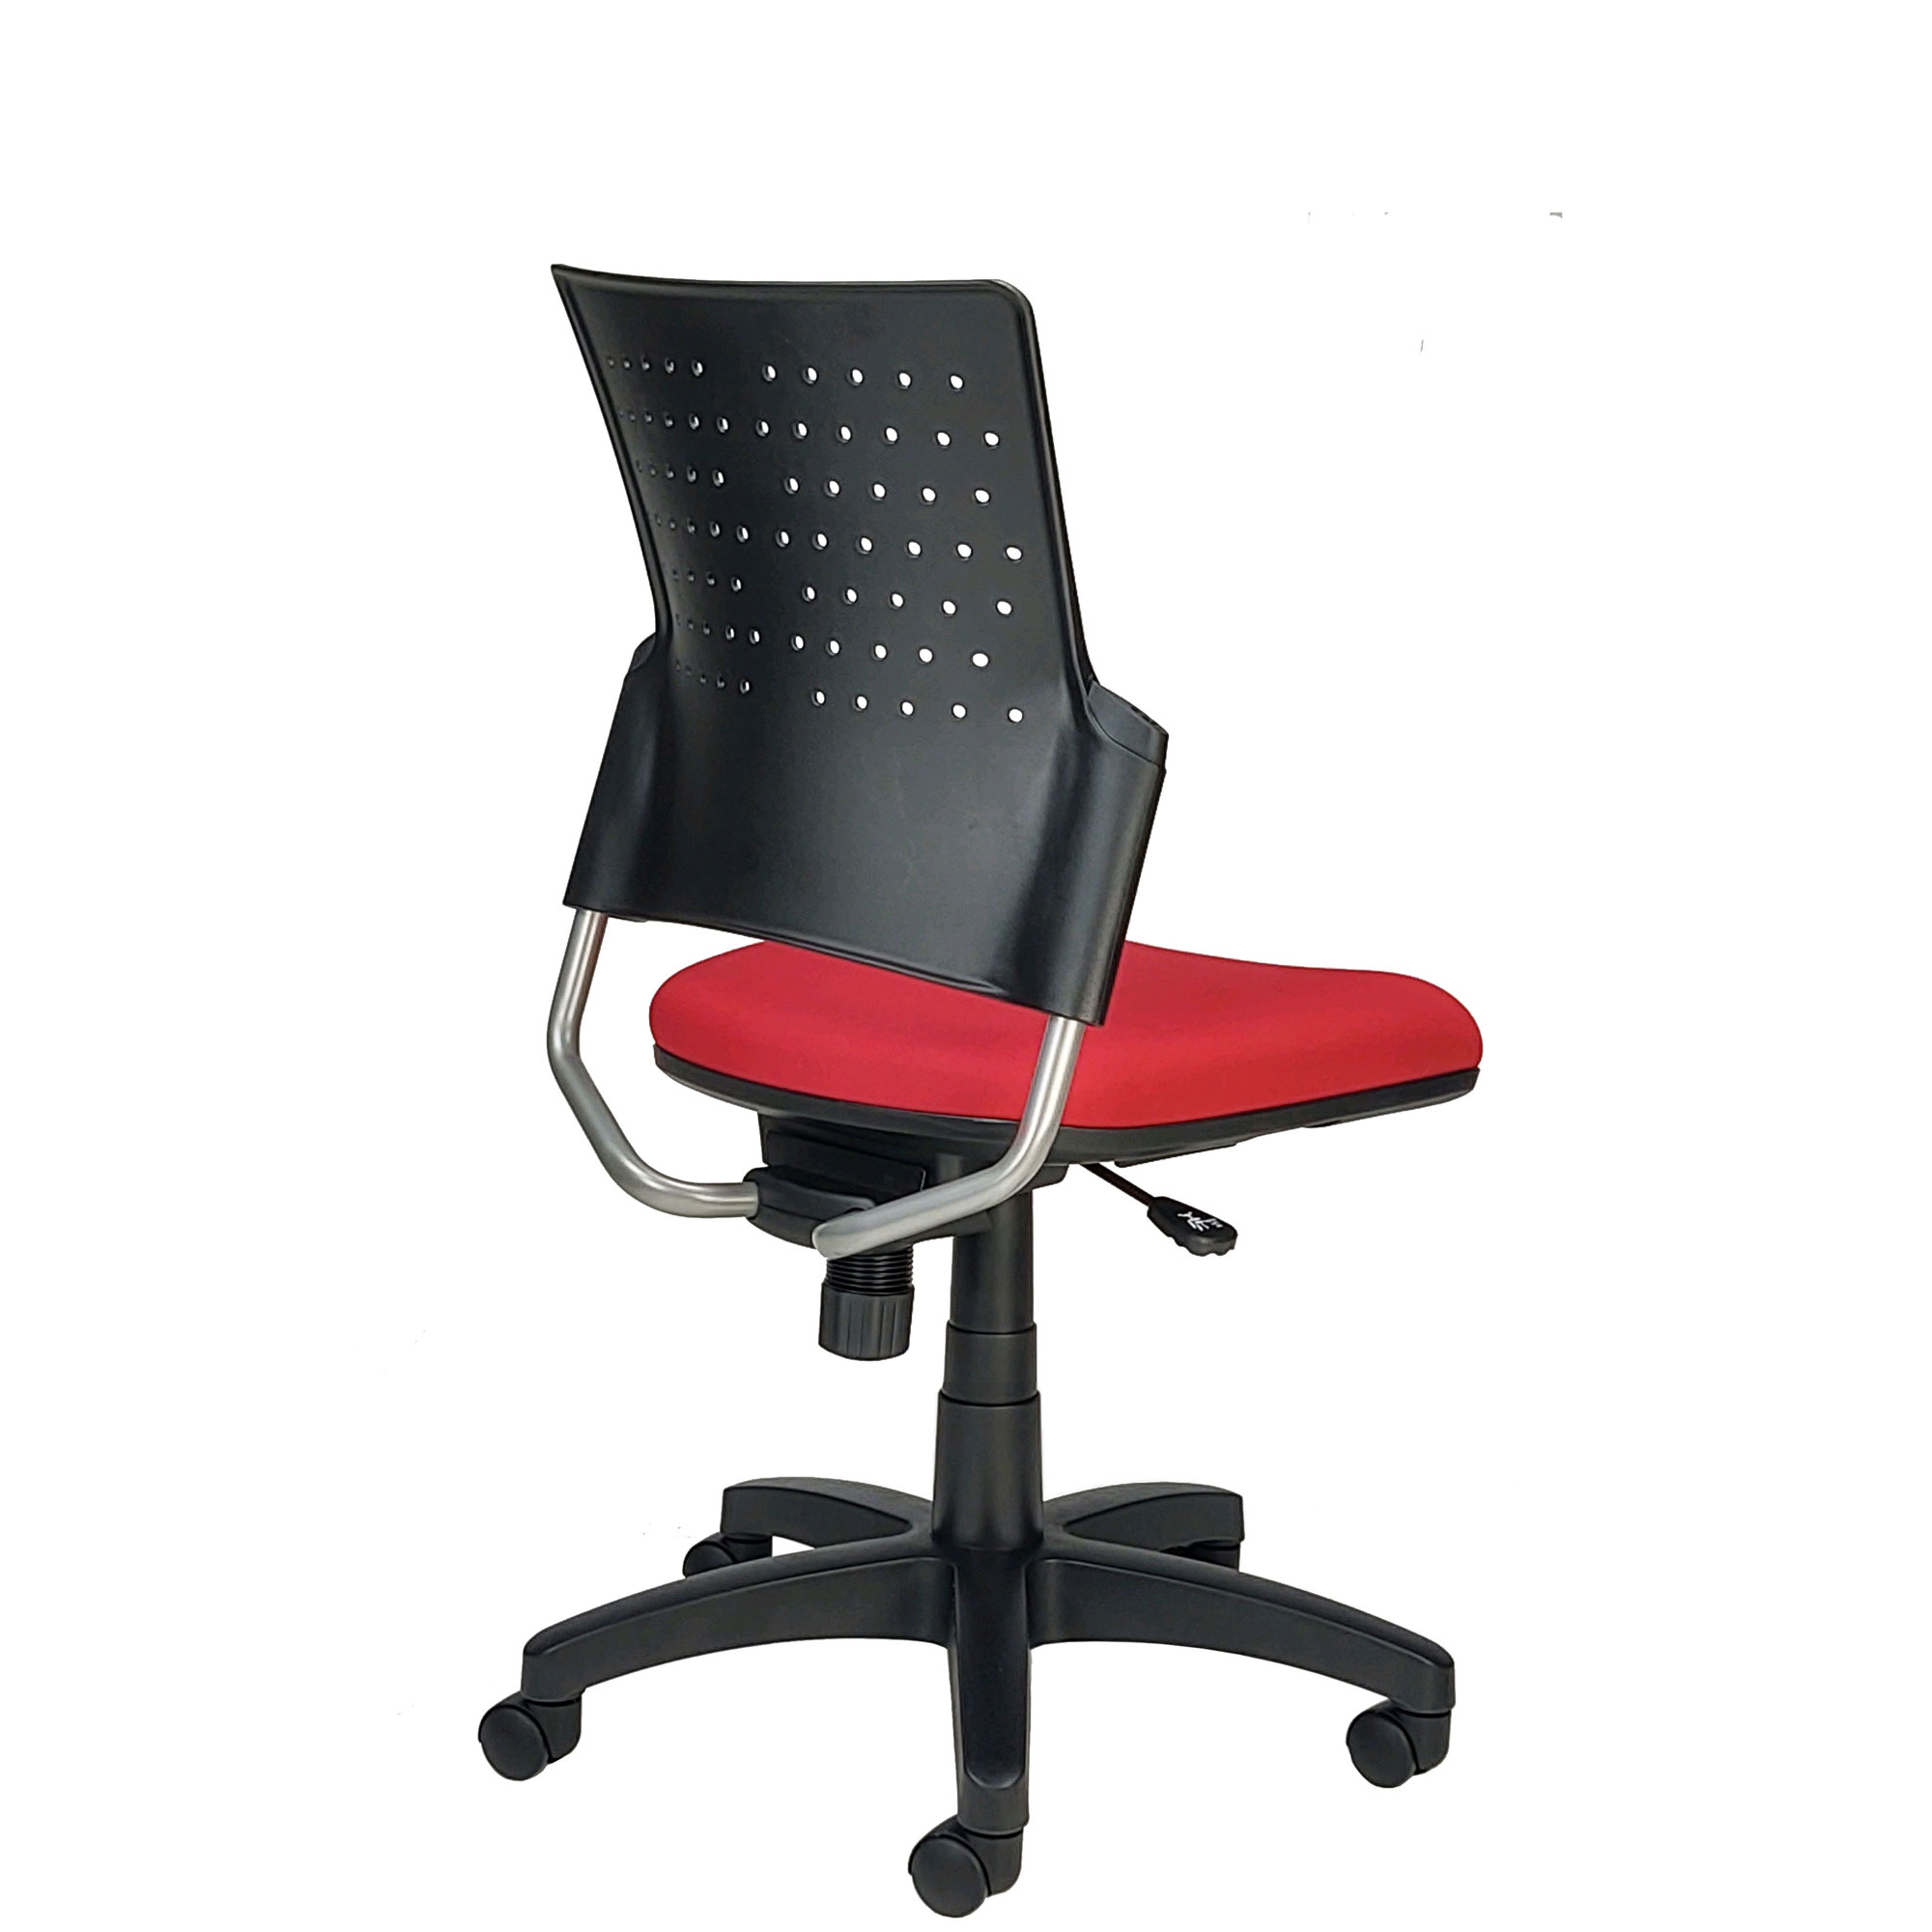 """Snap"" Chair For Home Office"